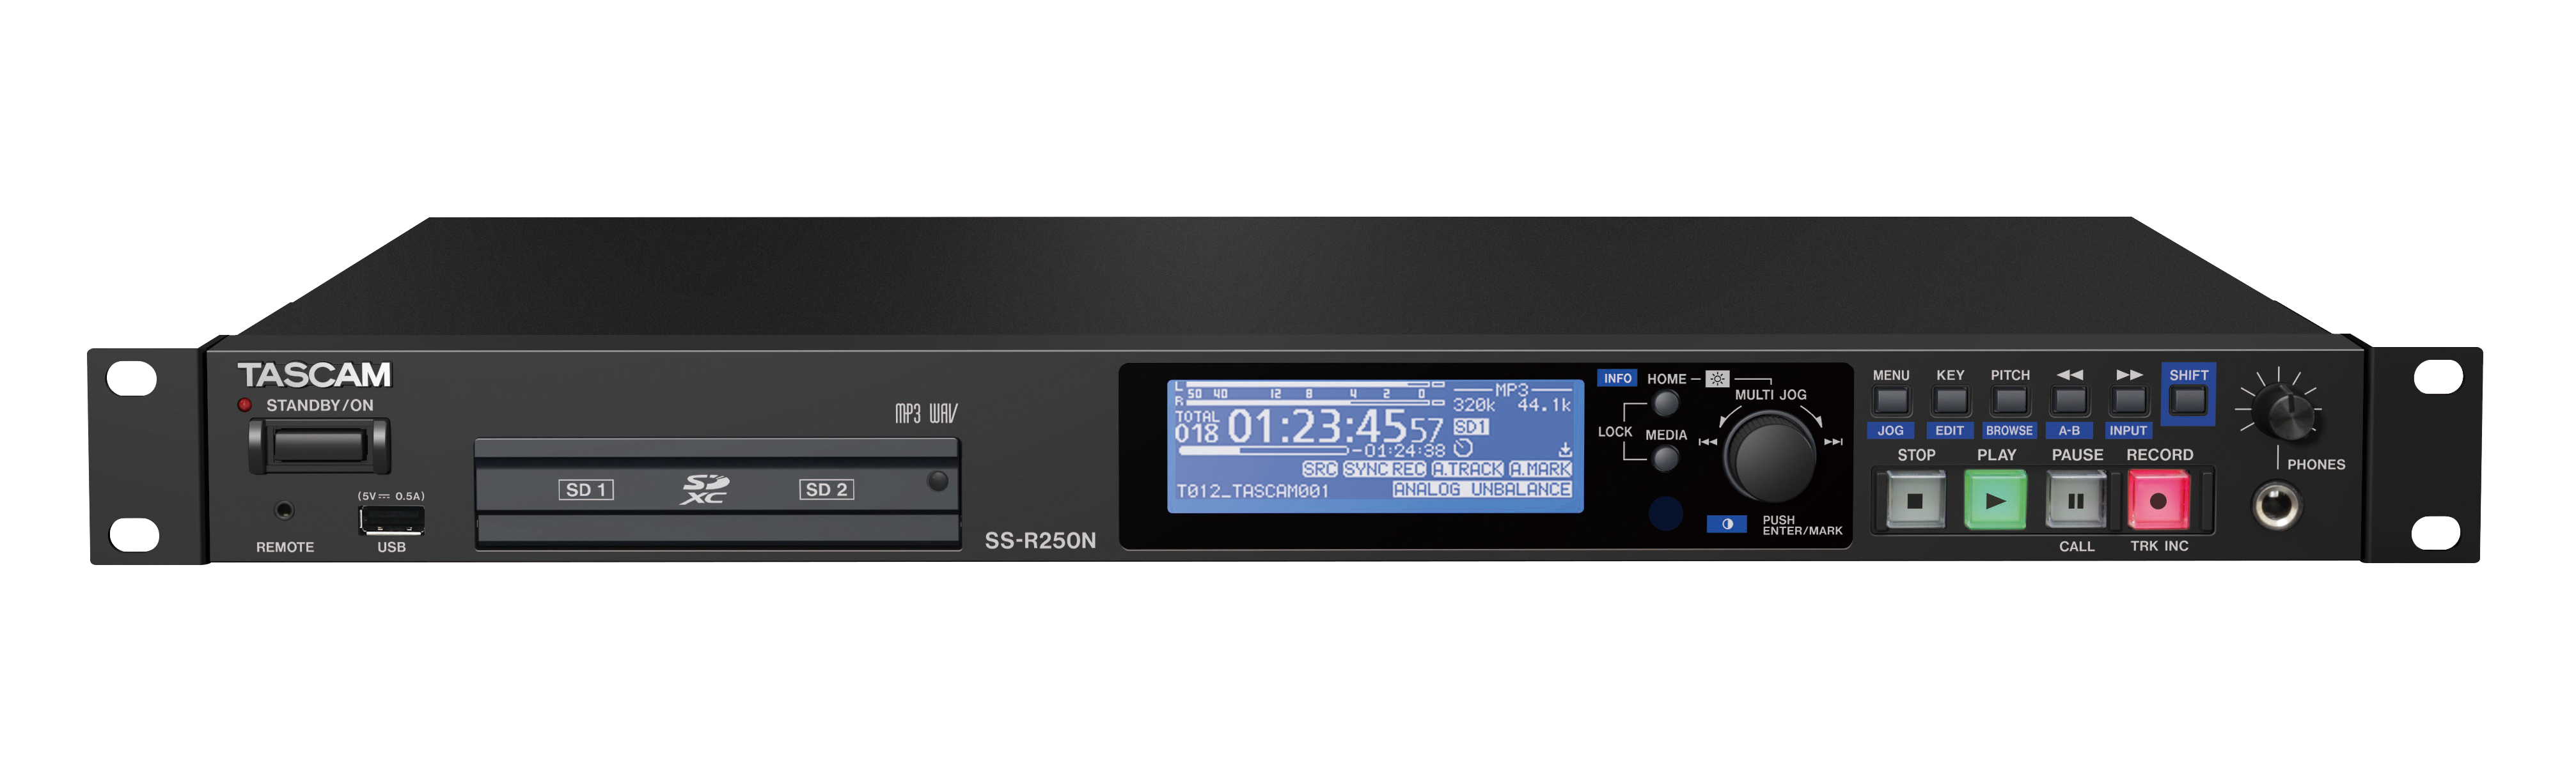 The Tascam SS-R250N Professional Network SD Player